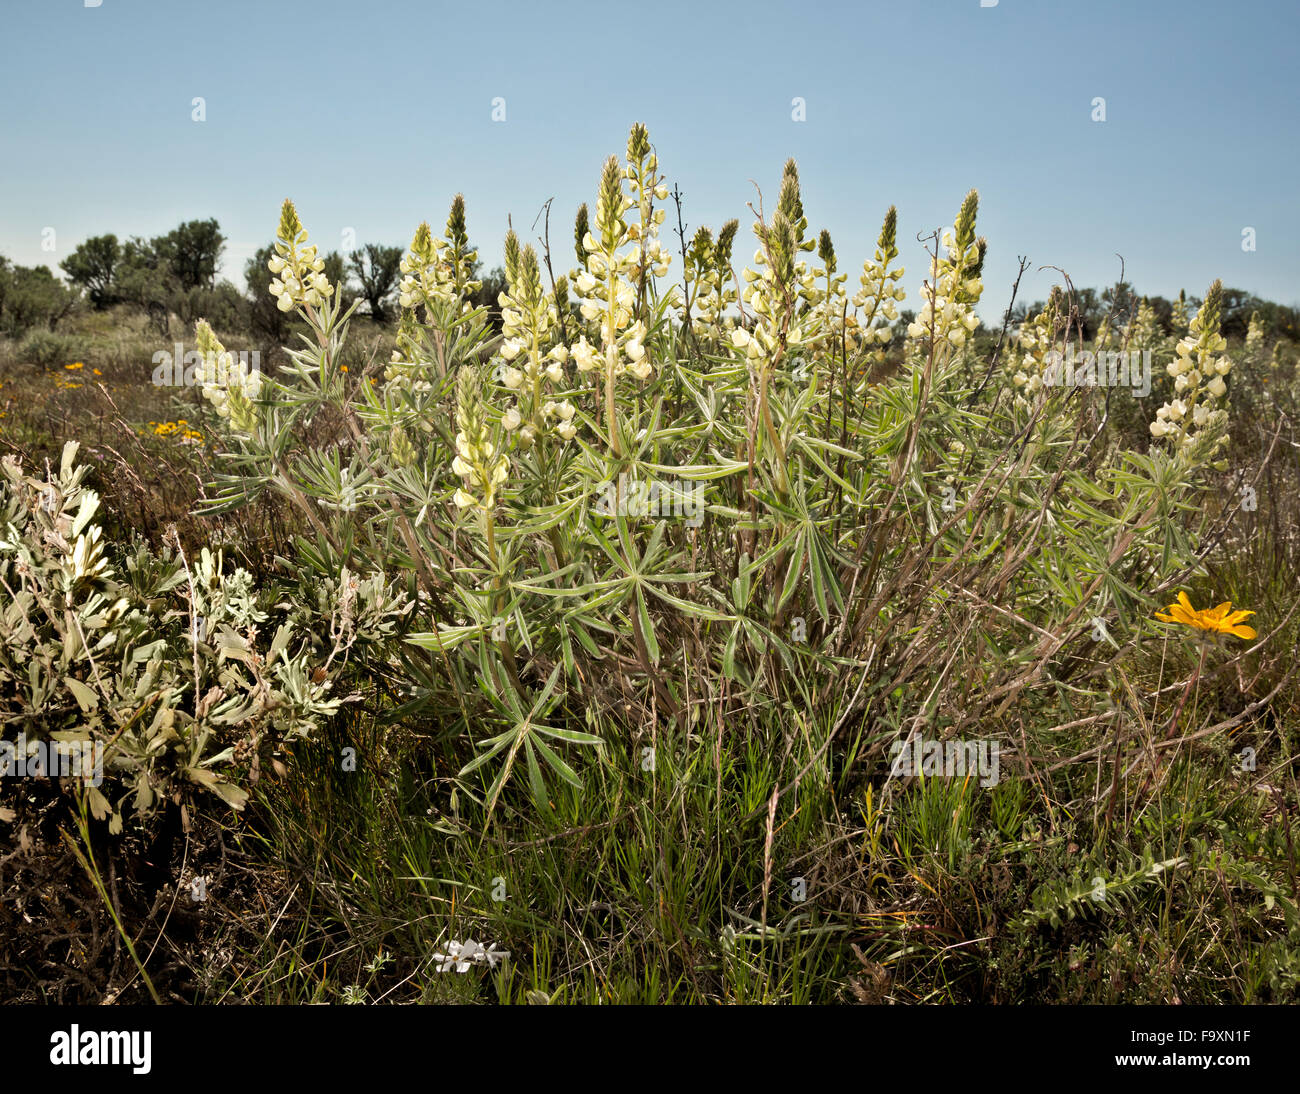 WA12389-00...WASHINGTON - Lupine blooming in the shrub-ecosystem of the Beezley Hills north of Quincy. - Stock Image